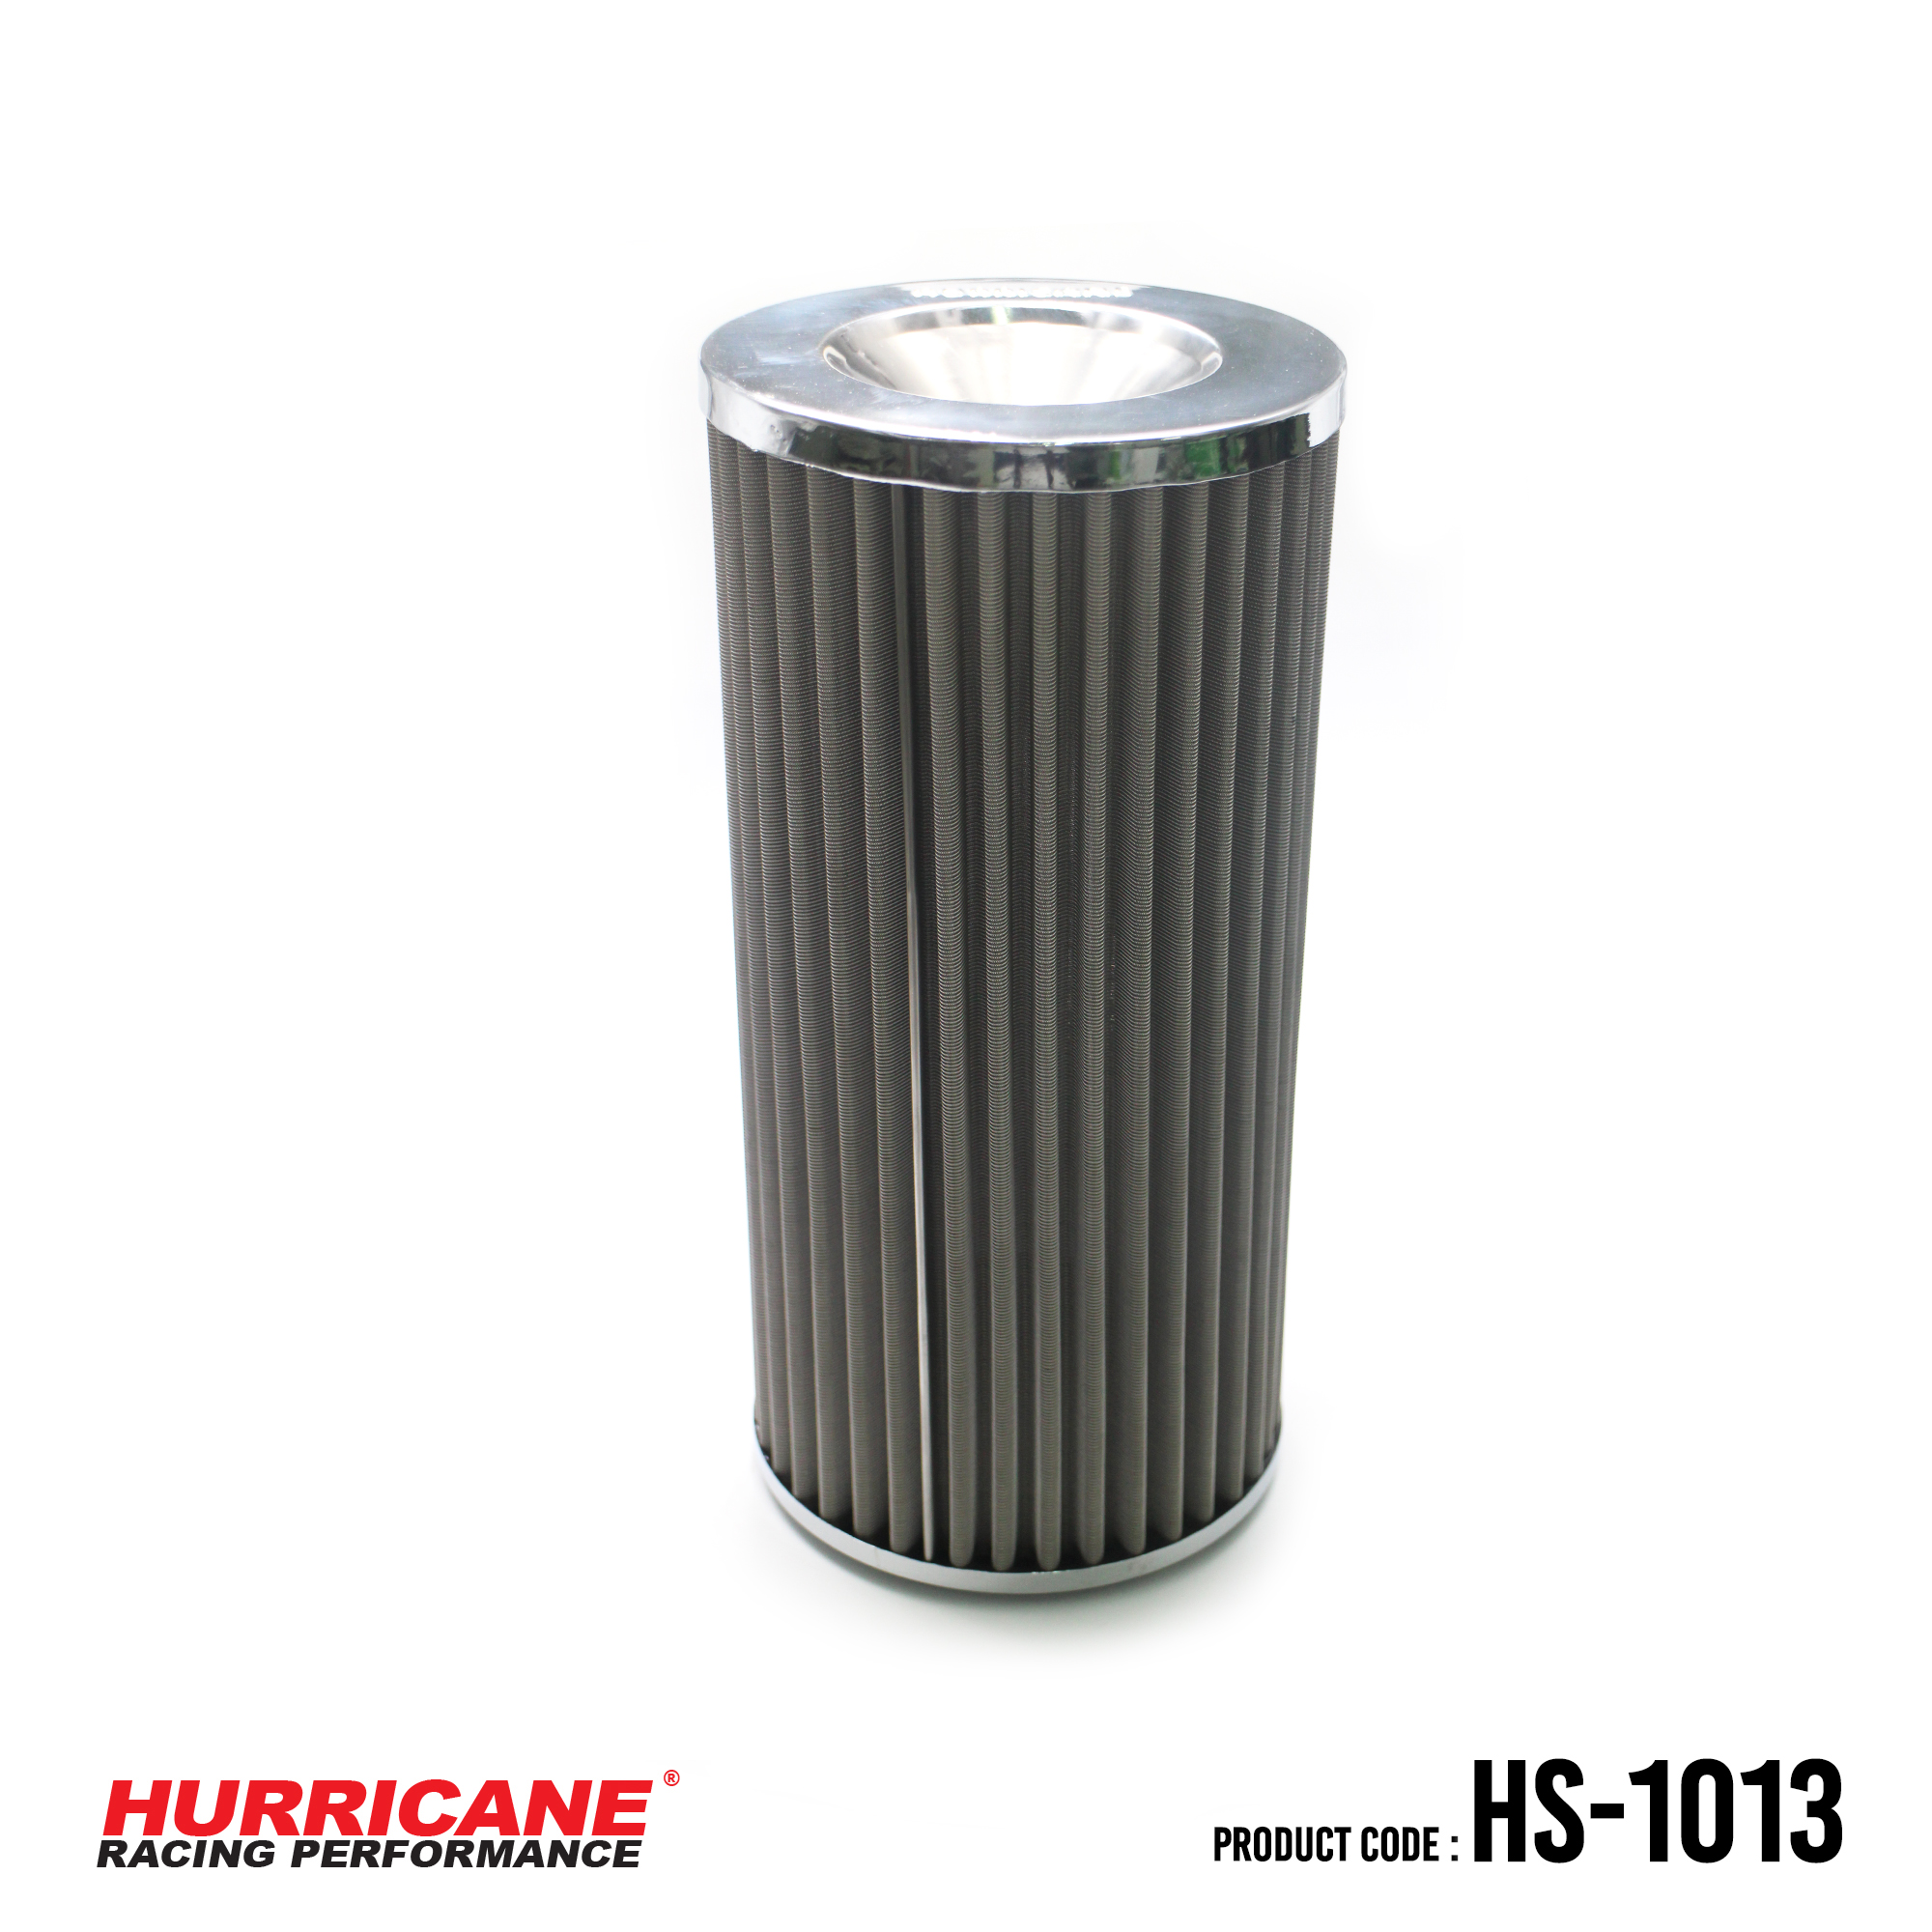 HURRICANE STAINLESS STEEL AIR FILTER FOR HS-1013 Toyota Nissan